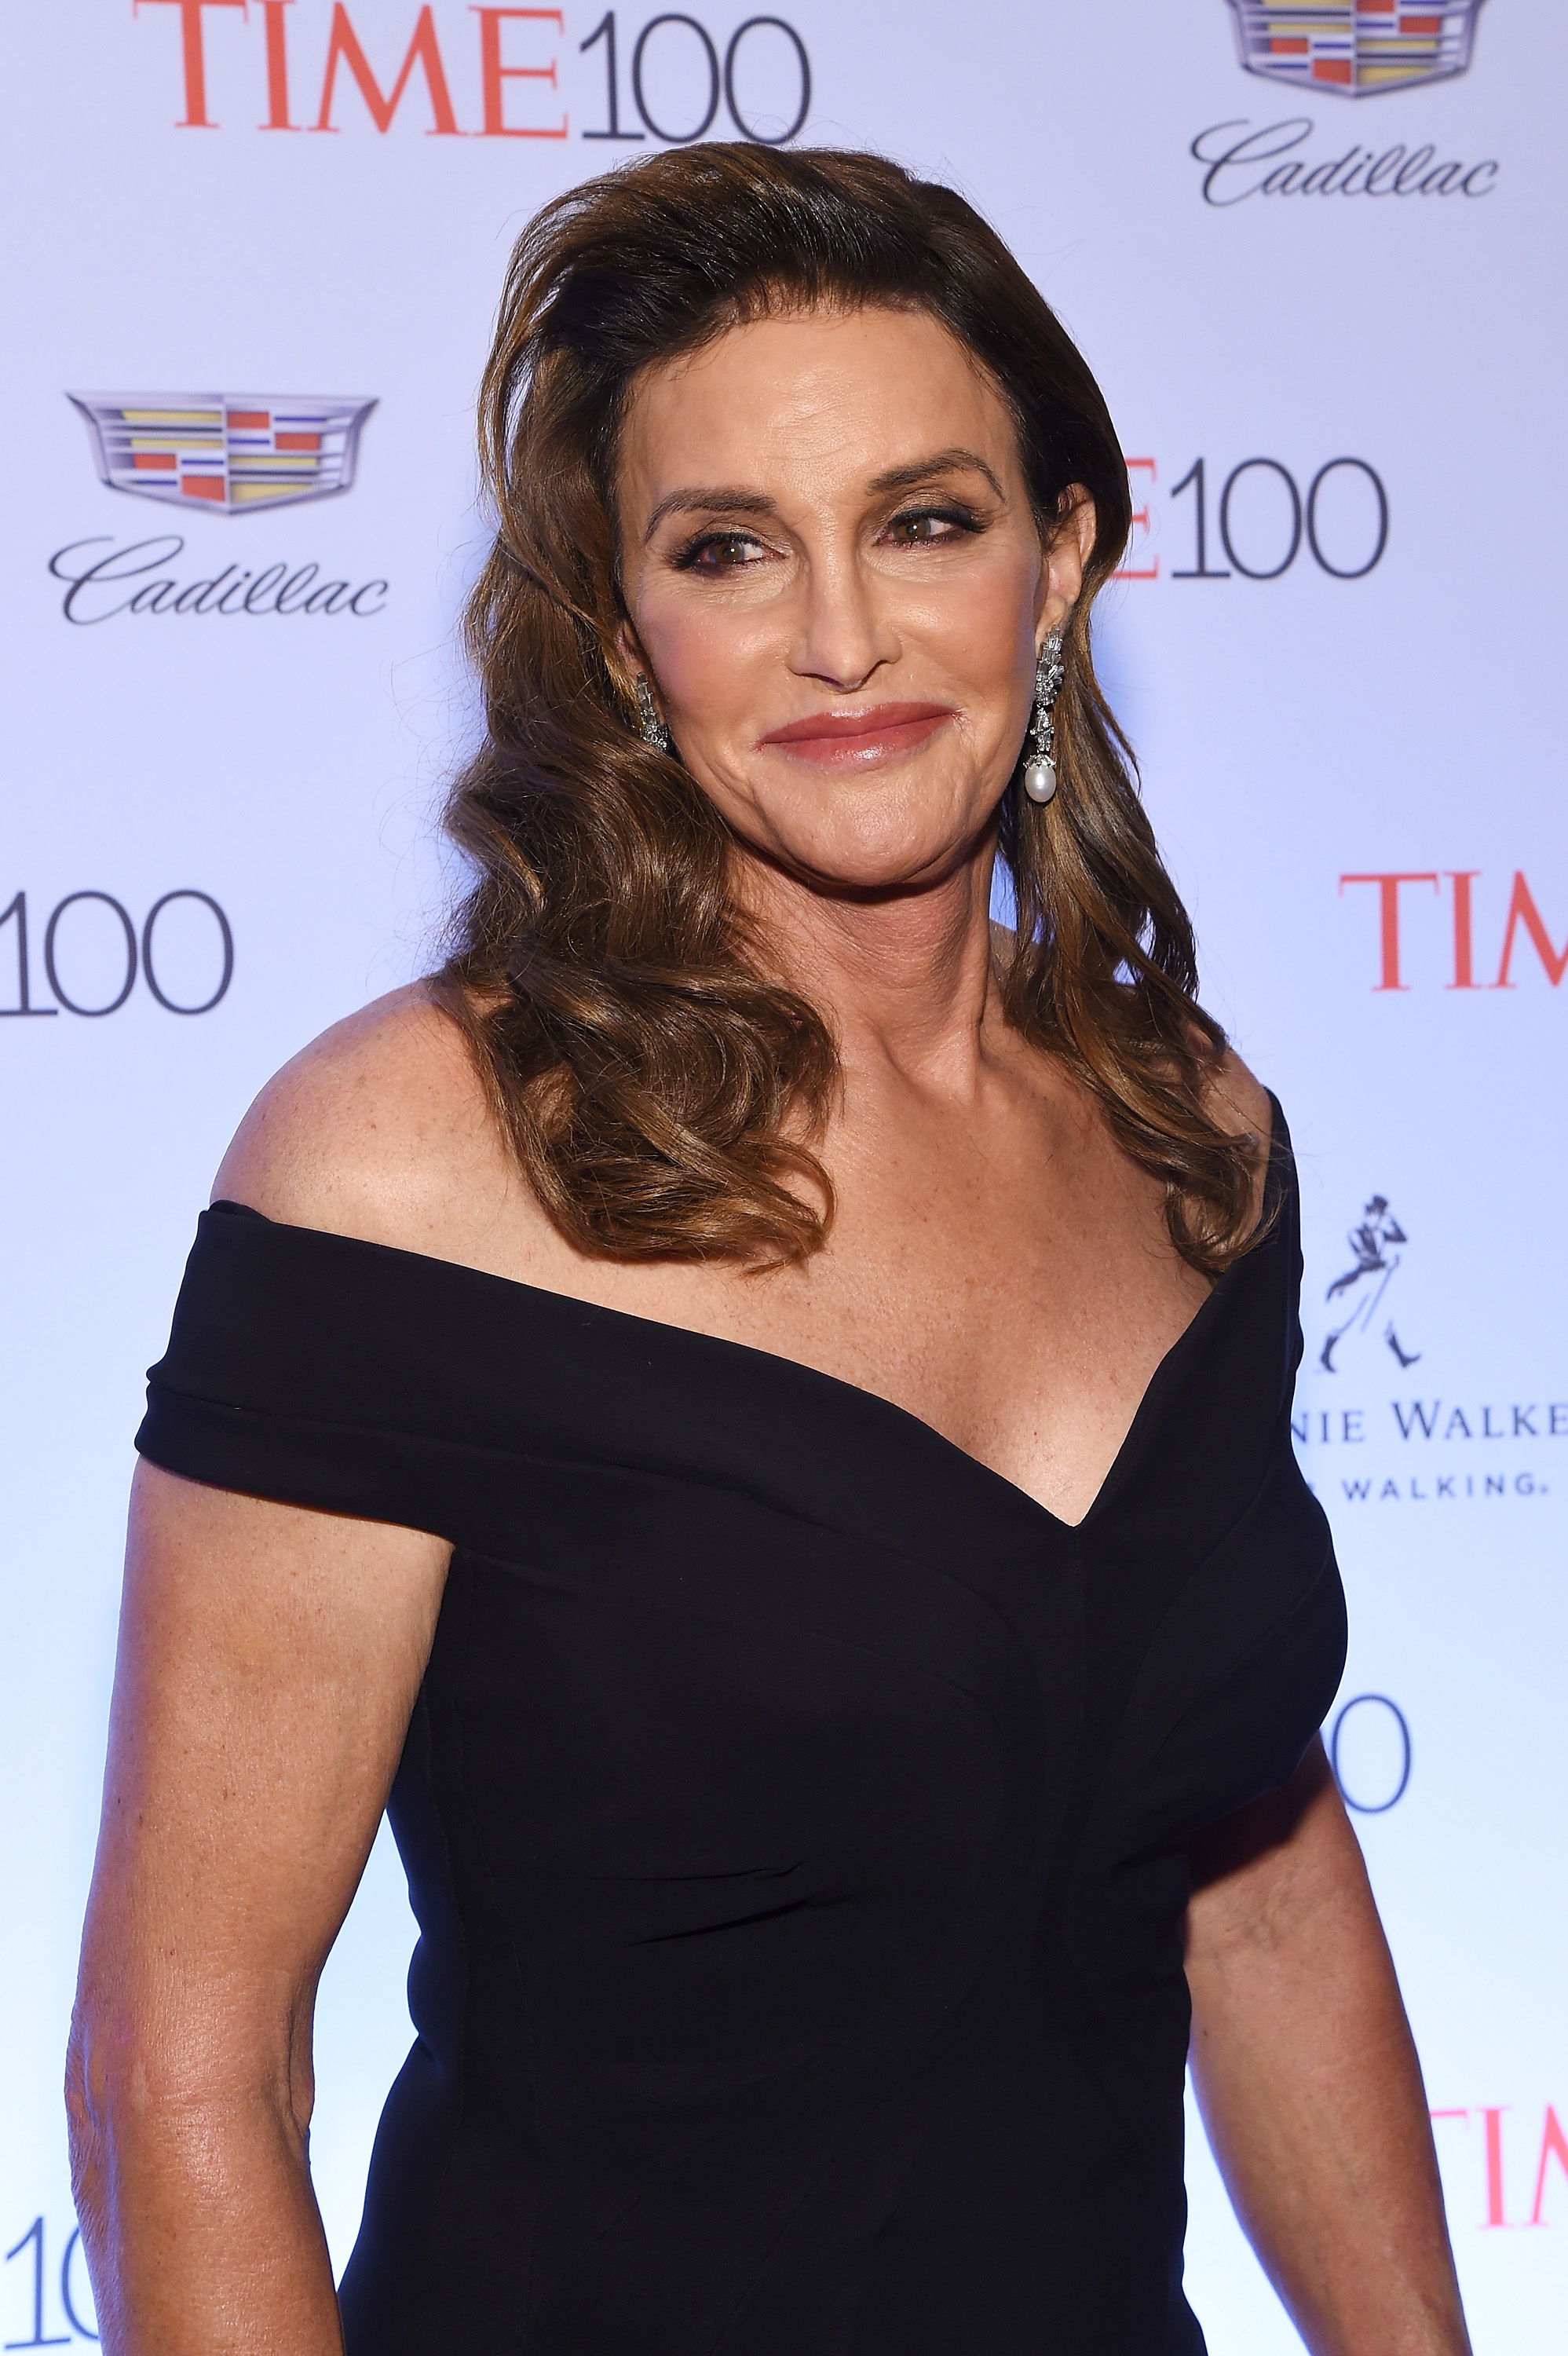 Caitlyn Jenner celebrates transition anniversary